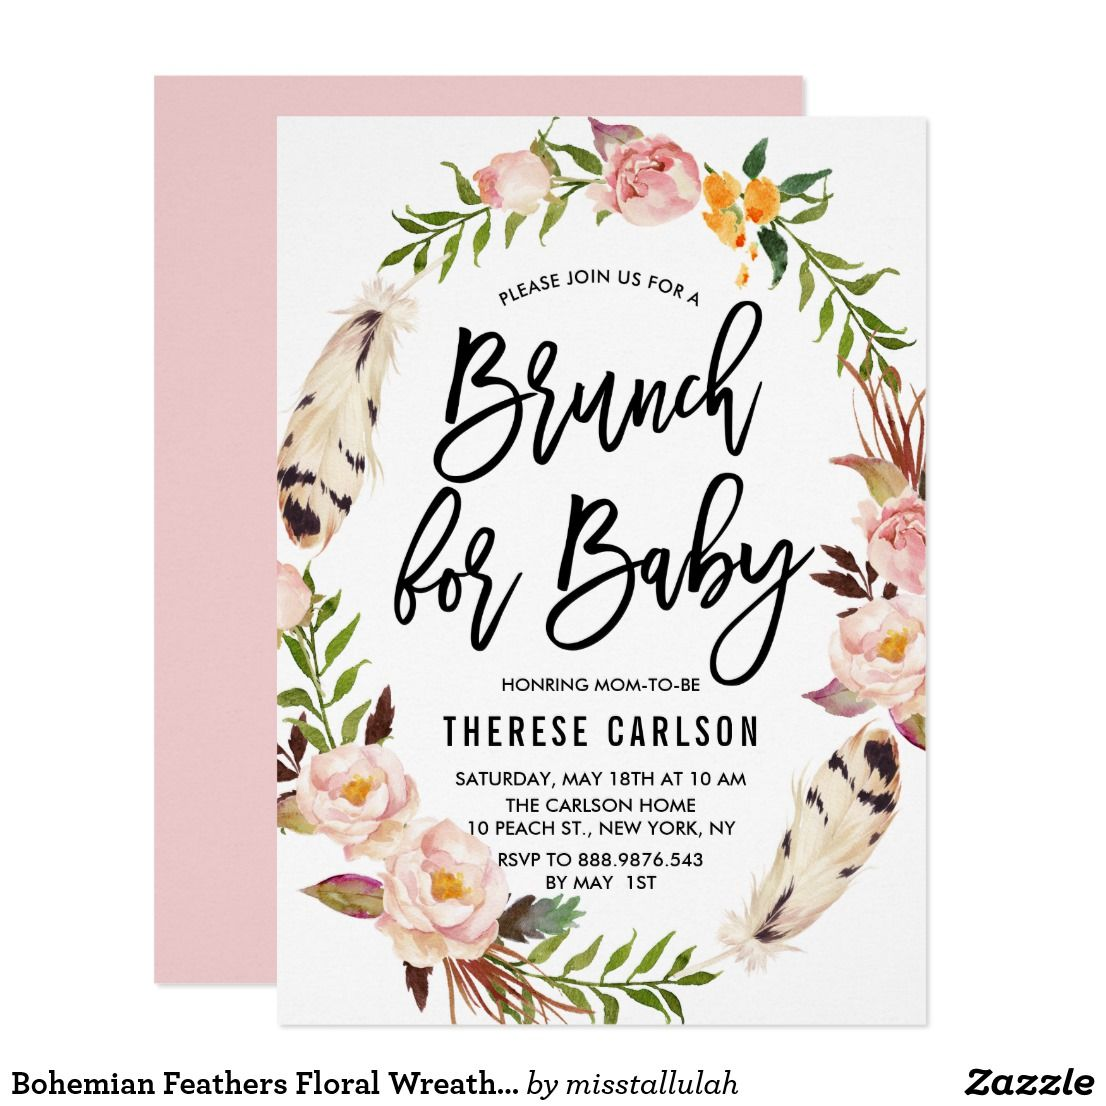 Bohemian Feathers Floral Wreath Baby Shower Brunch Card | Baby ...